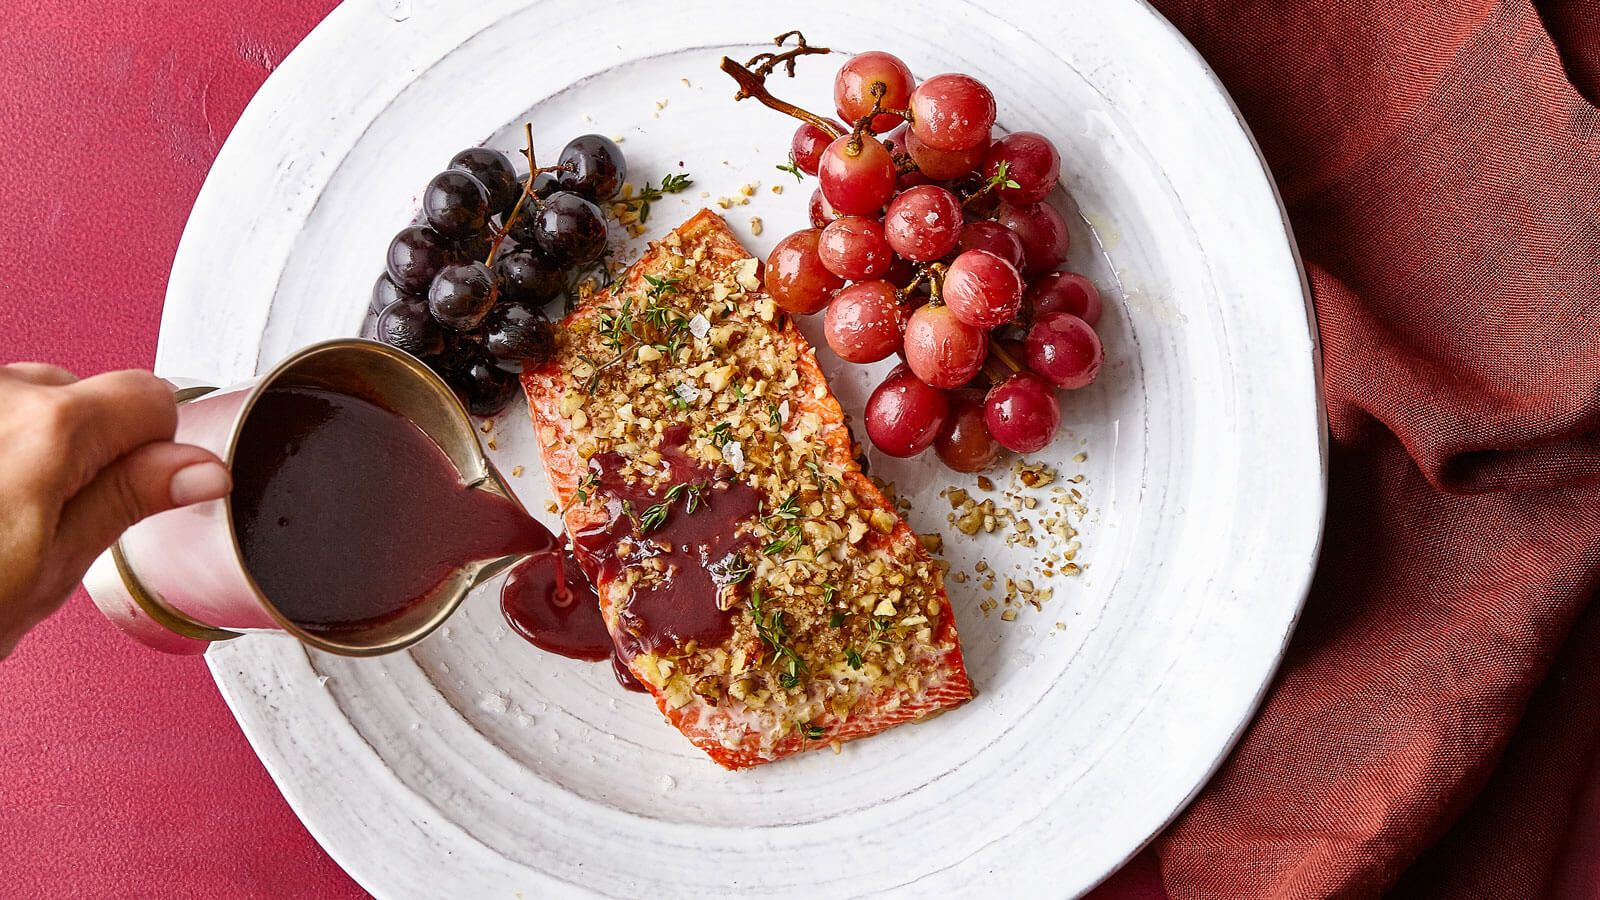 Ingredients And Step By Step Recipe For Wild Salmon With Roasted Grapes And Red Wine Sauce Find More Gourmet Recipes In 2020 Red Wine Sauce Baked Salmon Fresh Market